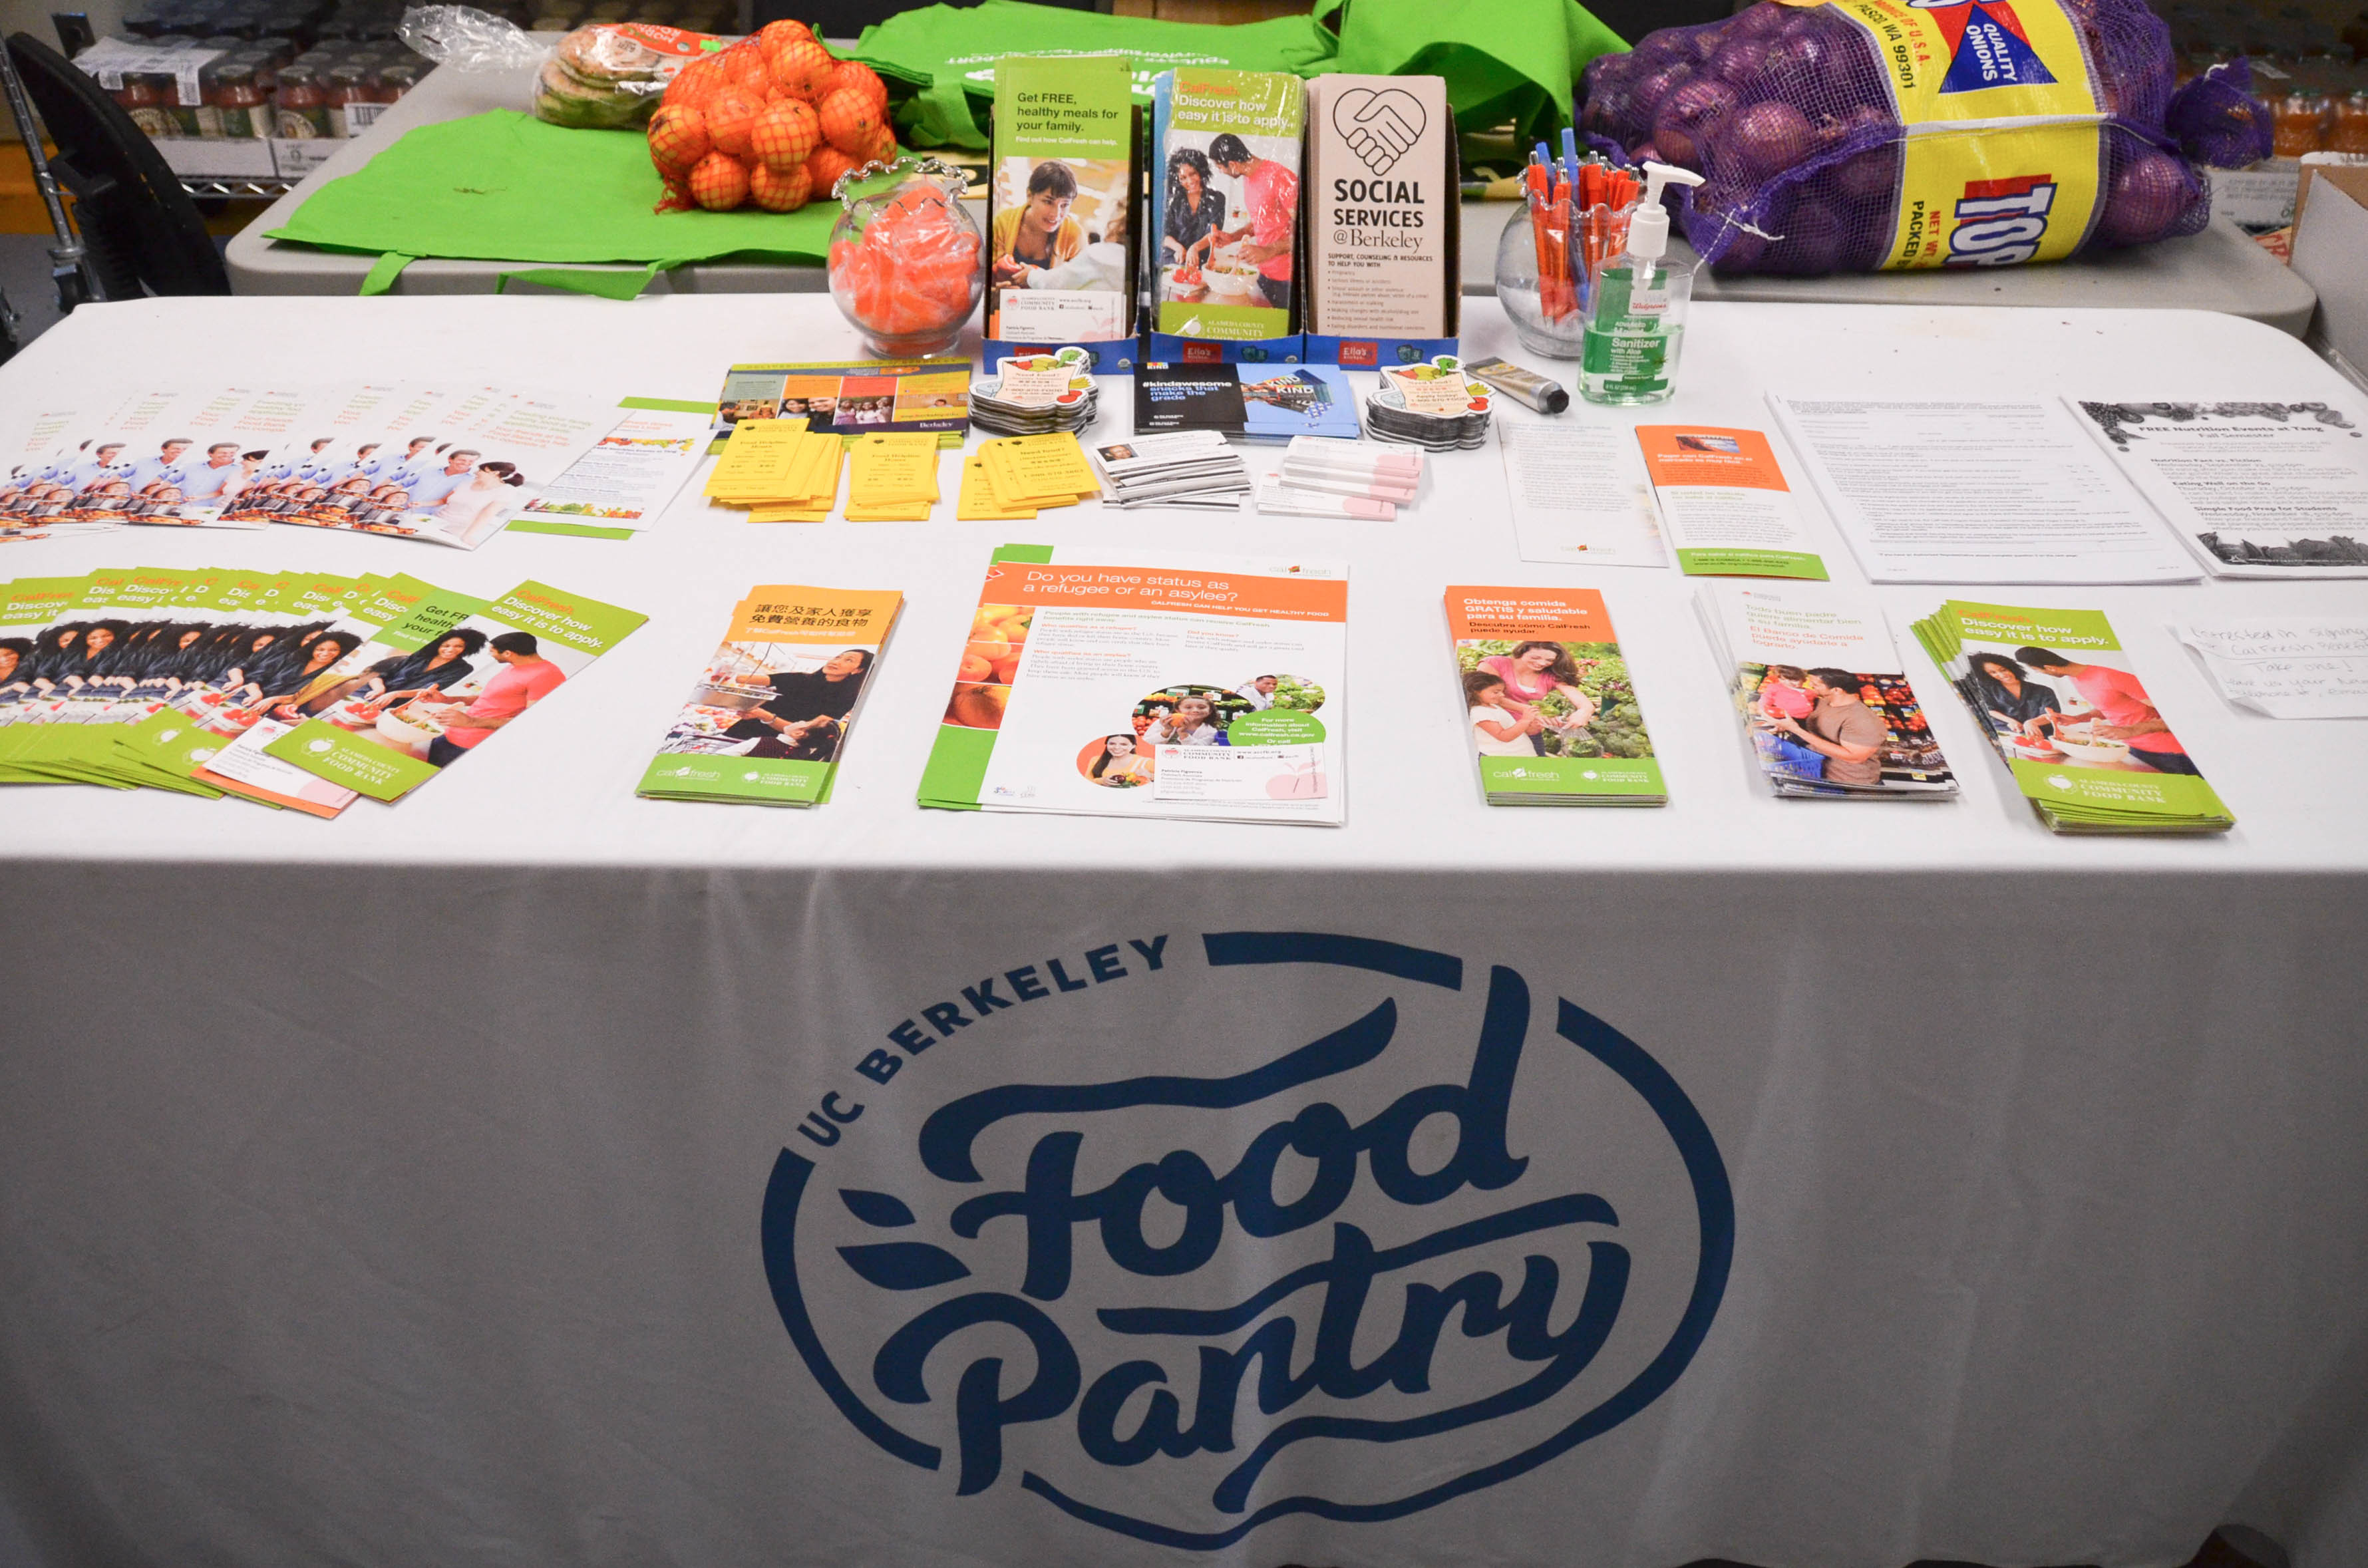 Best ideas about Uc Berkeley Food Pantry . Save or Pin DSC 2595 – UC Berkeley Food Pantry Now.